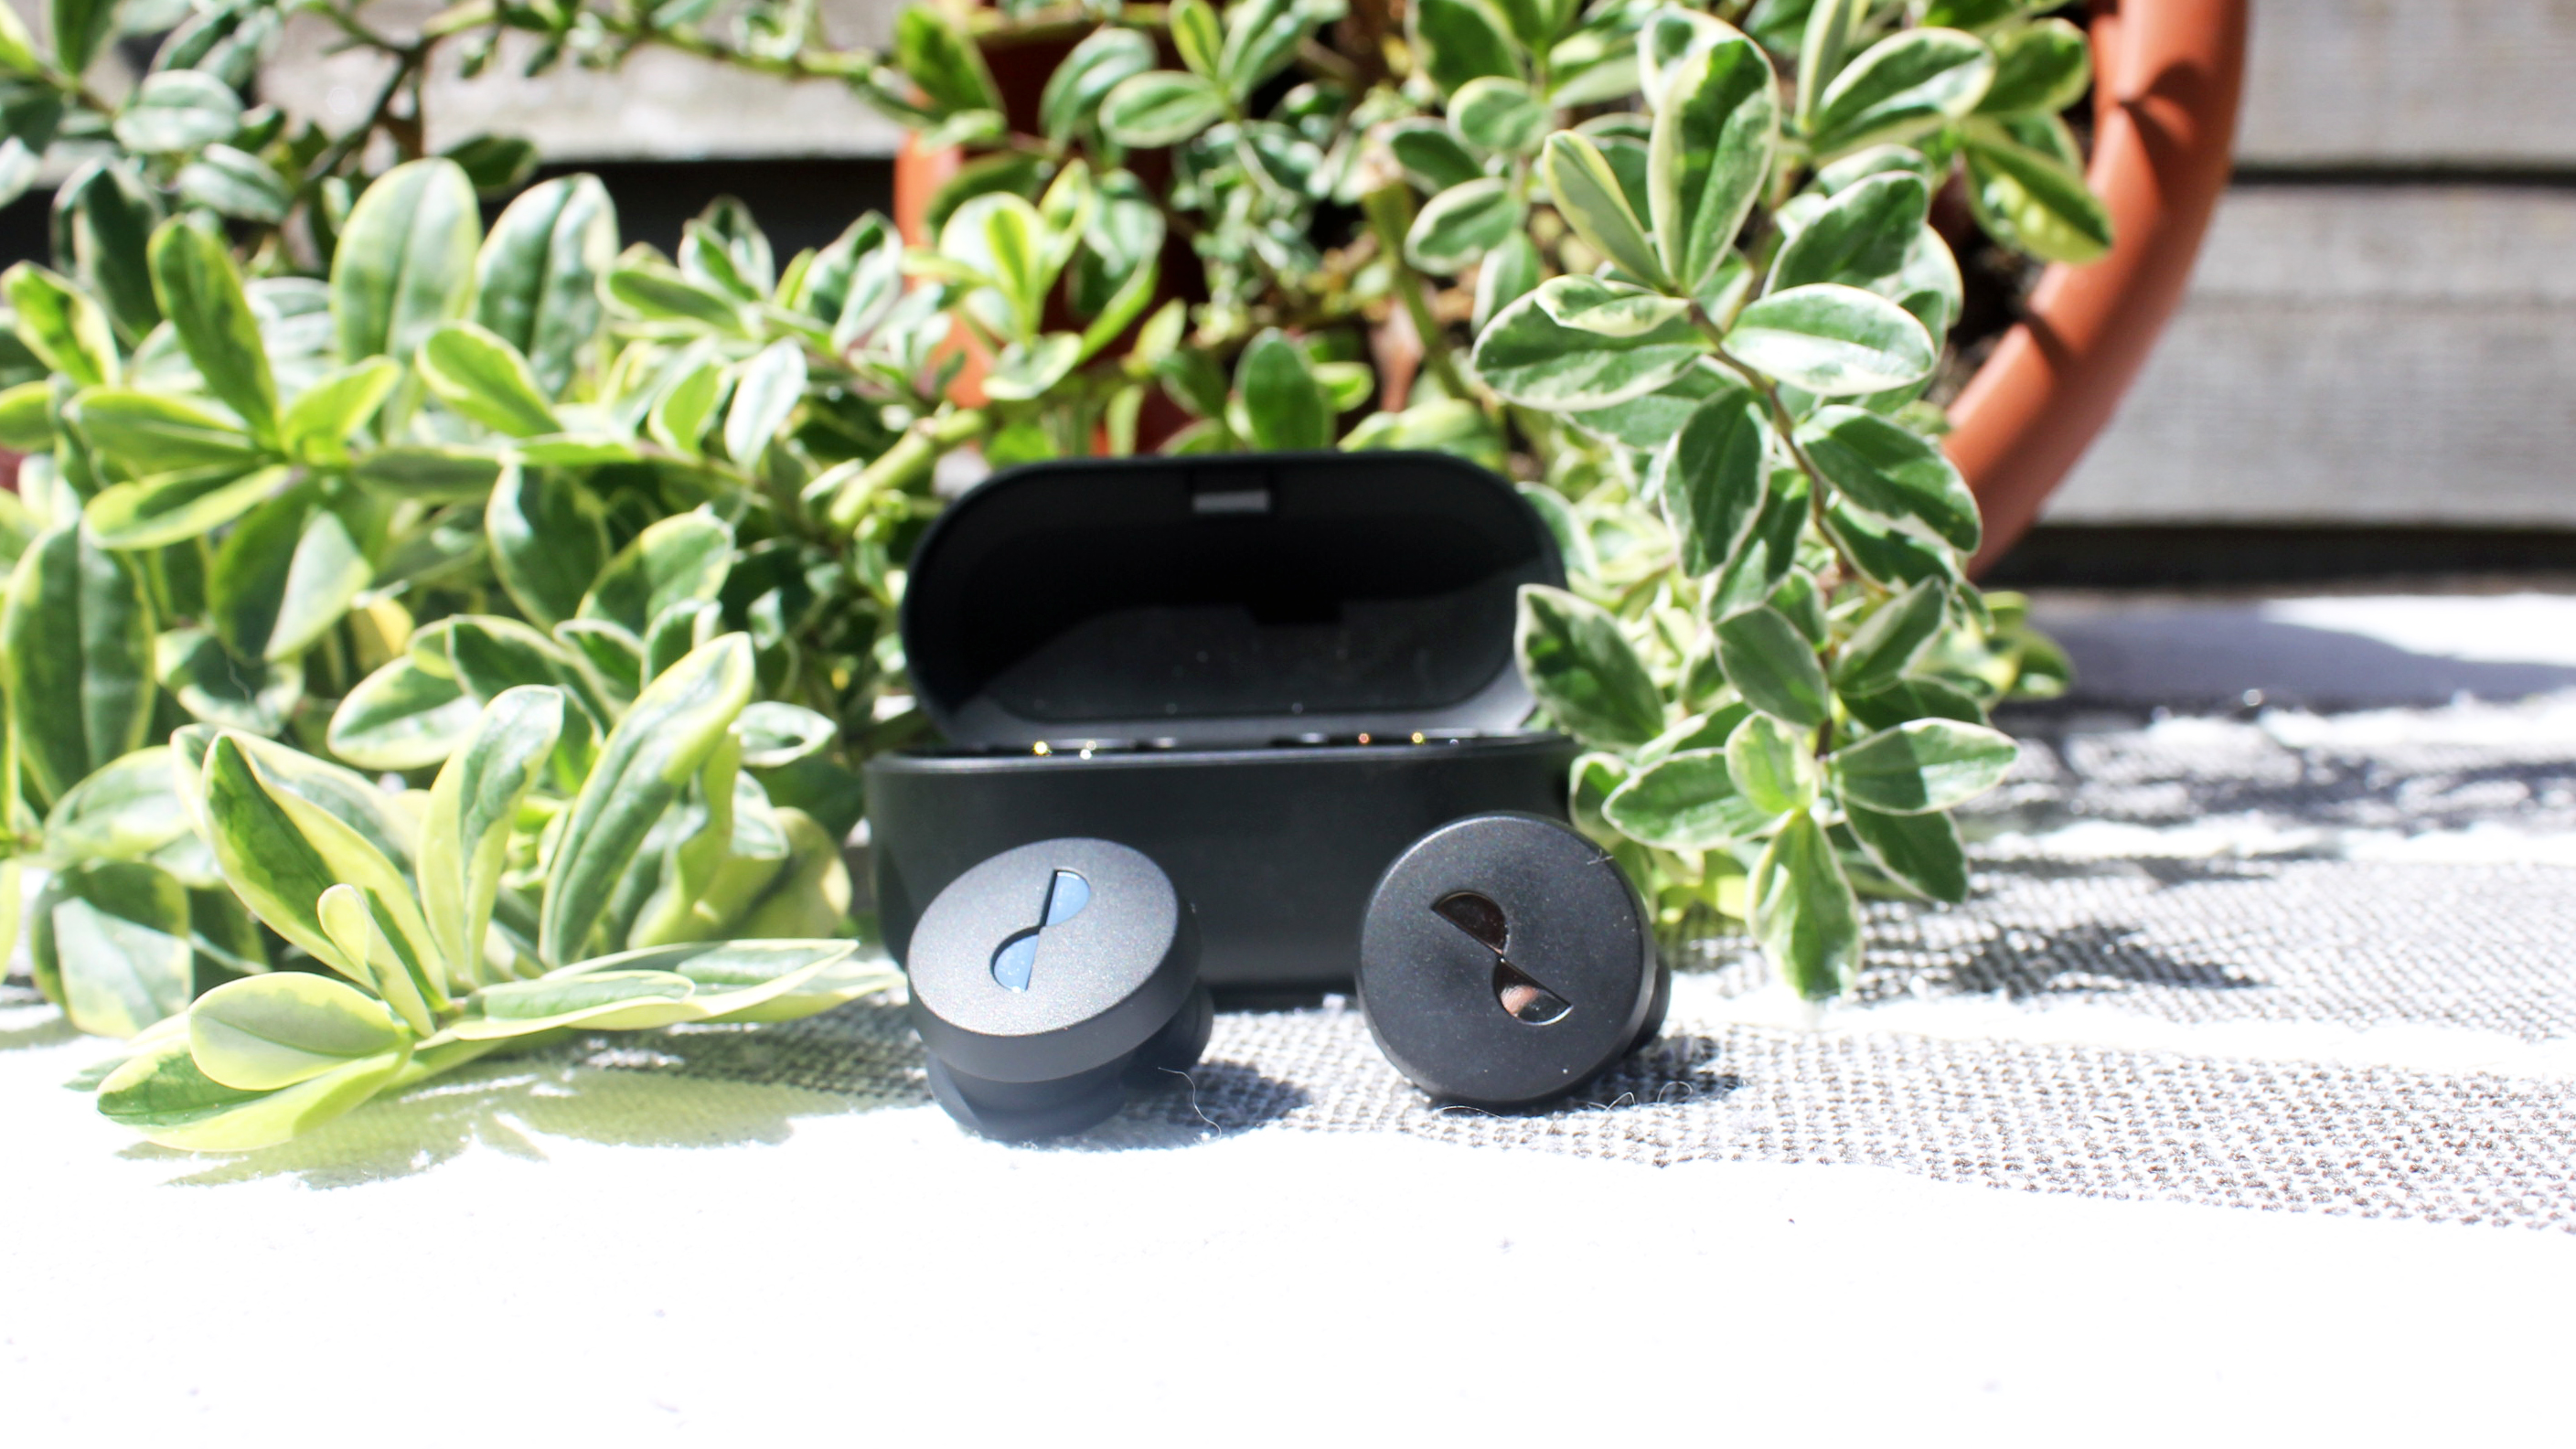 the nuratrue wireless earbuds in front of their charging case